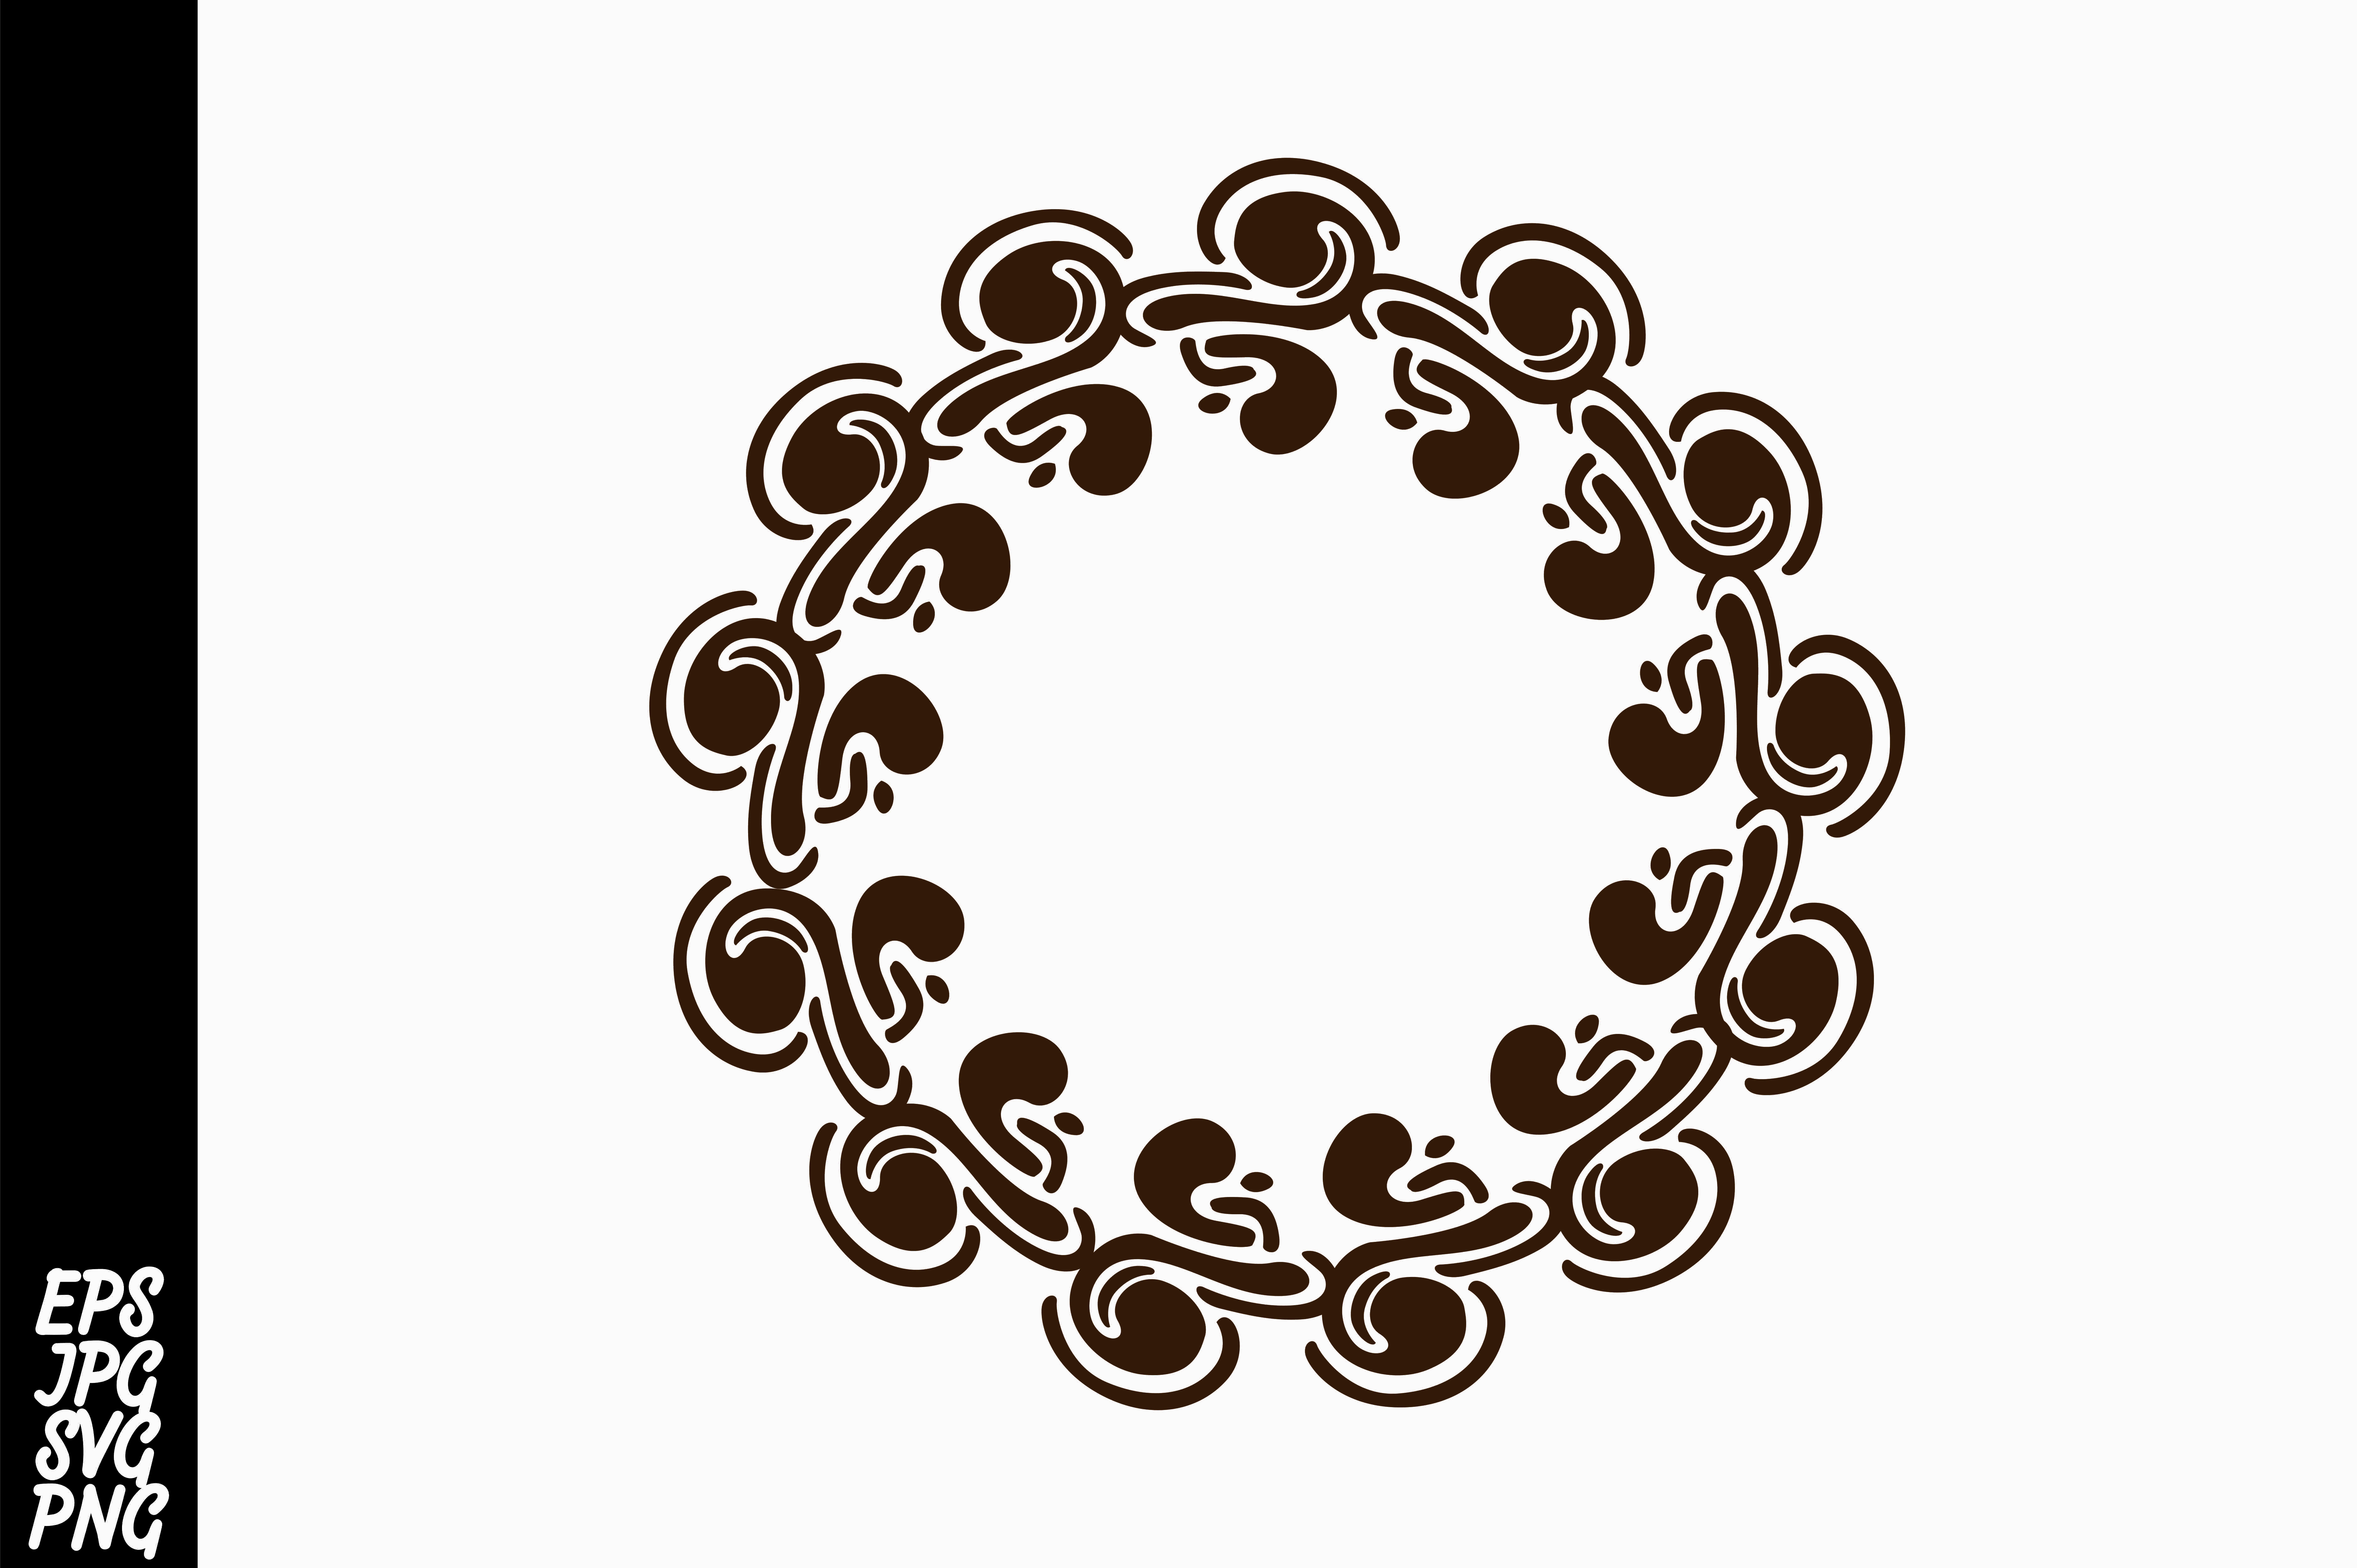 Download Free Monogram Frames Graphic By Arsa Adjie Creative Fabrica for Cricut Explore, Silhouette and other cutting machines.